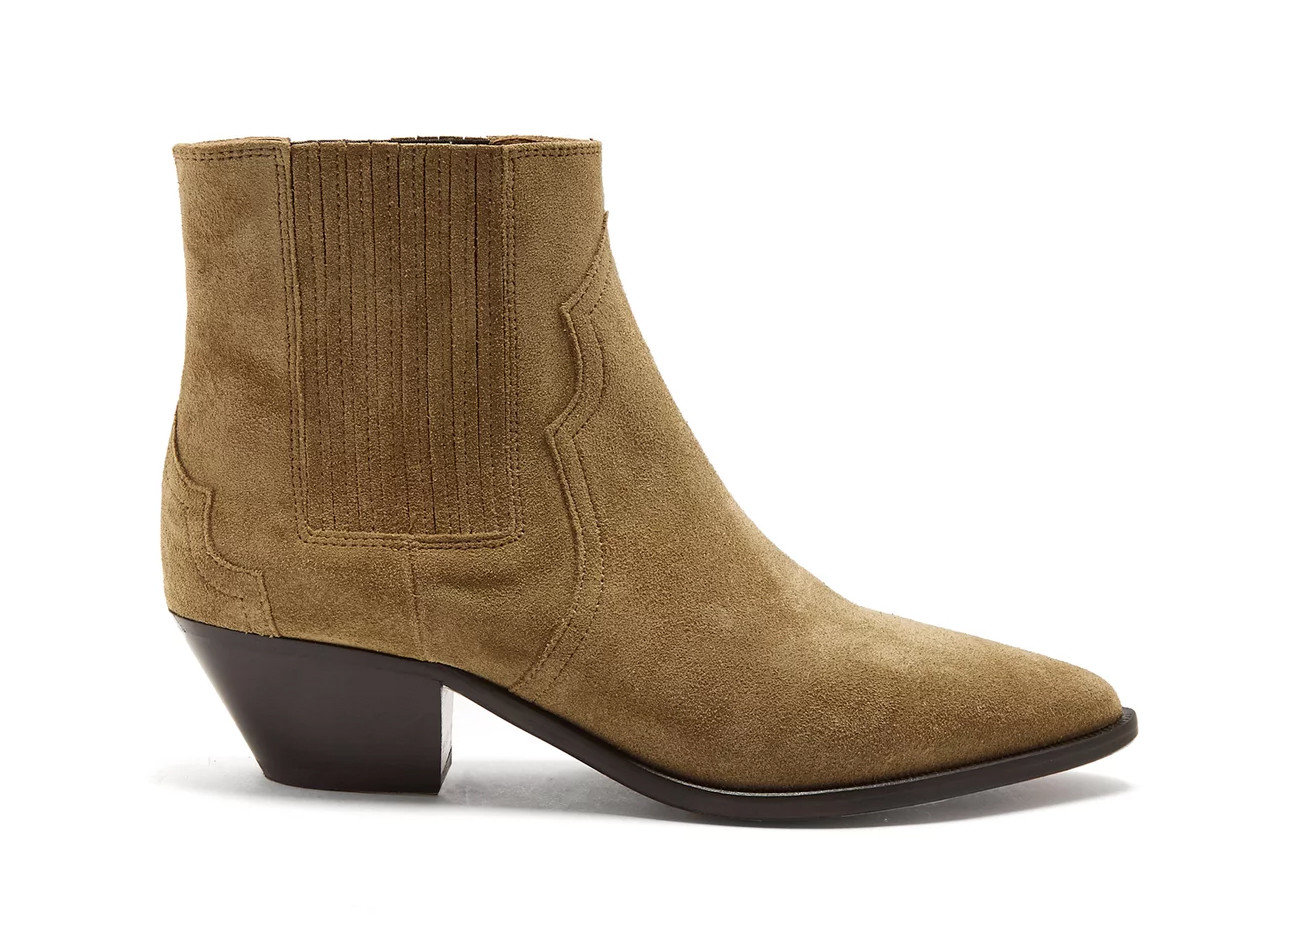 Outdoors + Adventure Trip Ideas clothing footwear boot brown suede beige shoe leather product design sock